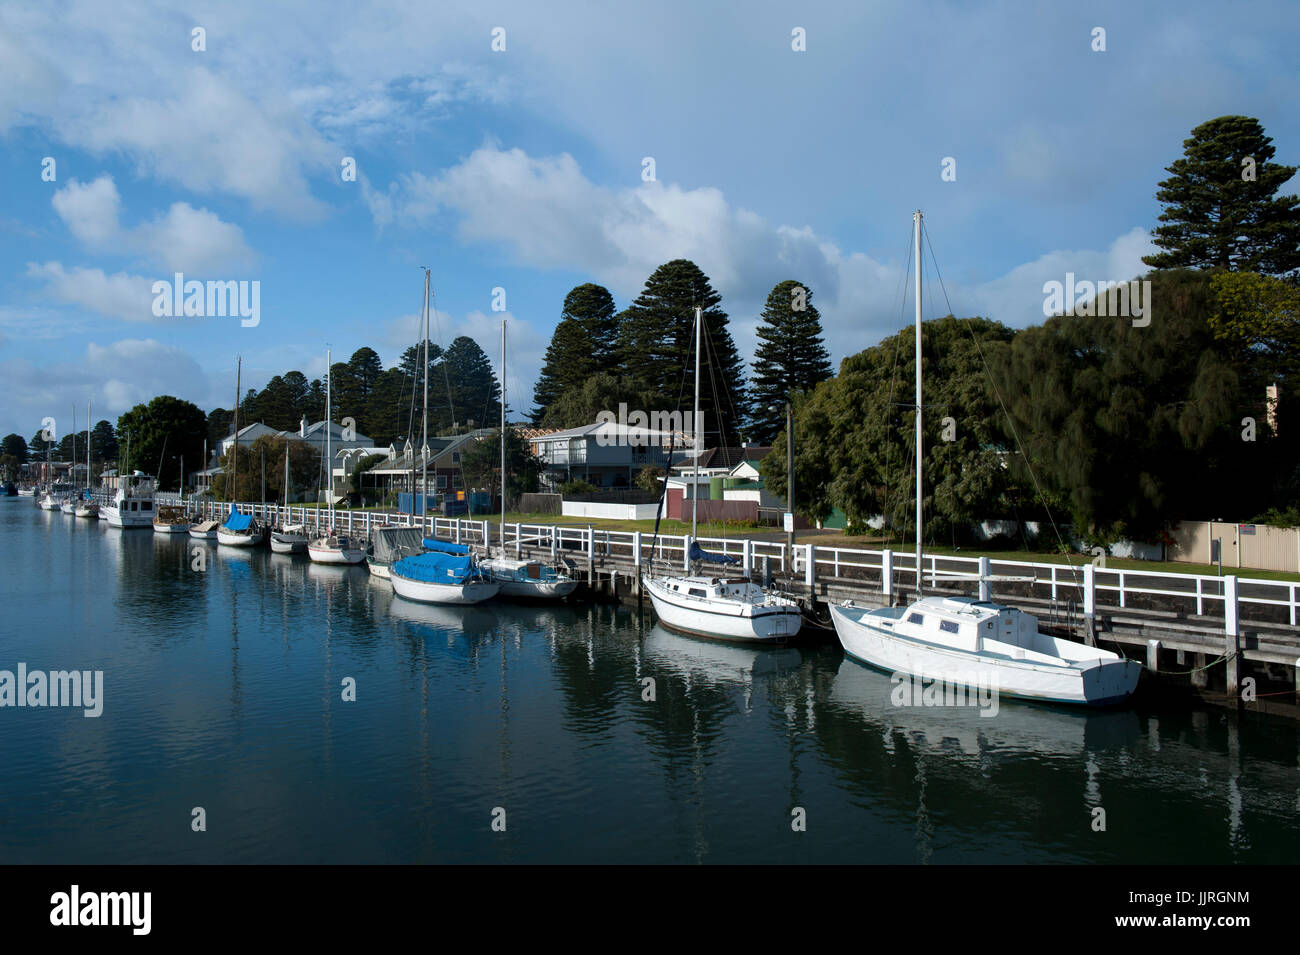 Moored yachts on River Moyne at Port Fairy, Victoria, Australia - Stock Image